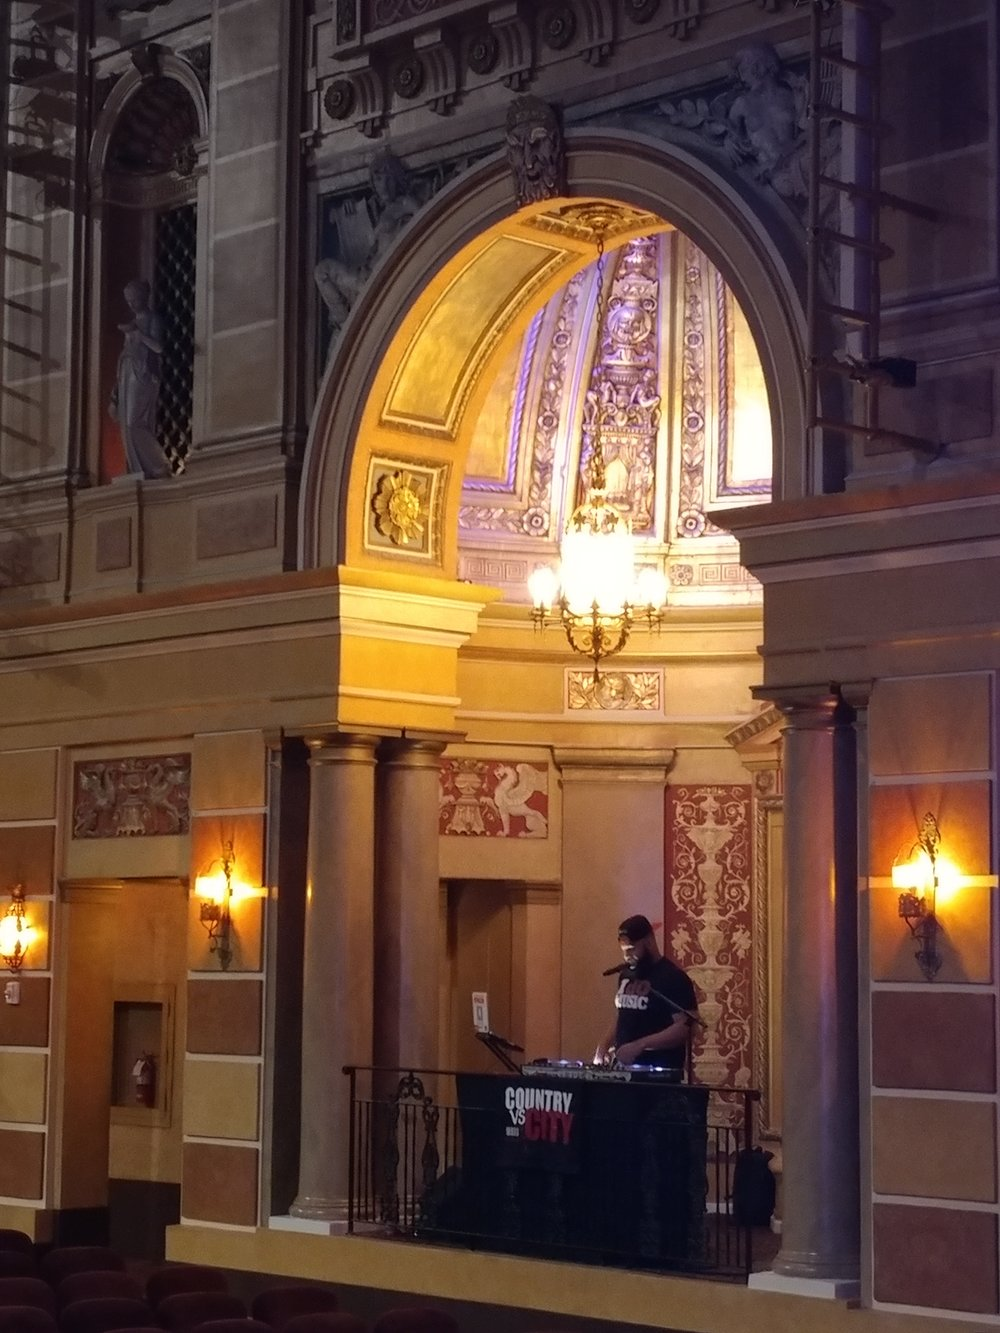 DJ Ron during morning sound check in New Orleans